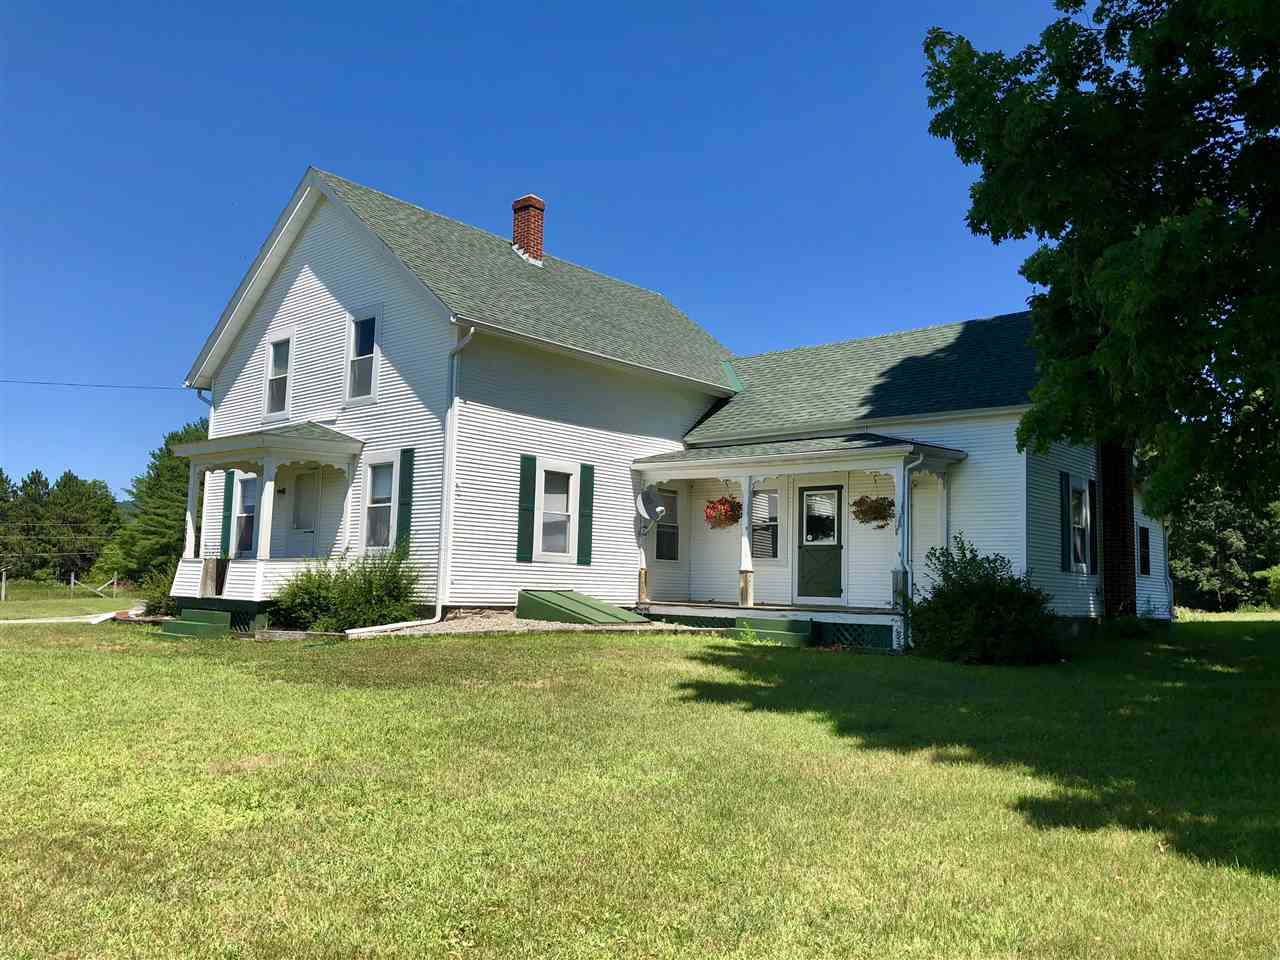 1540 Case Street Middlebury Vt 05753 In Addison County Mls